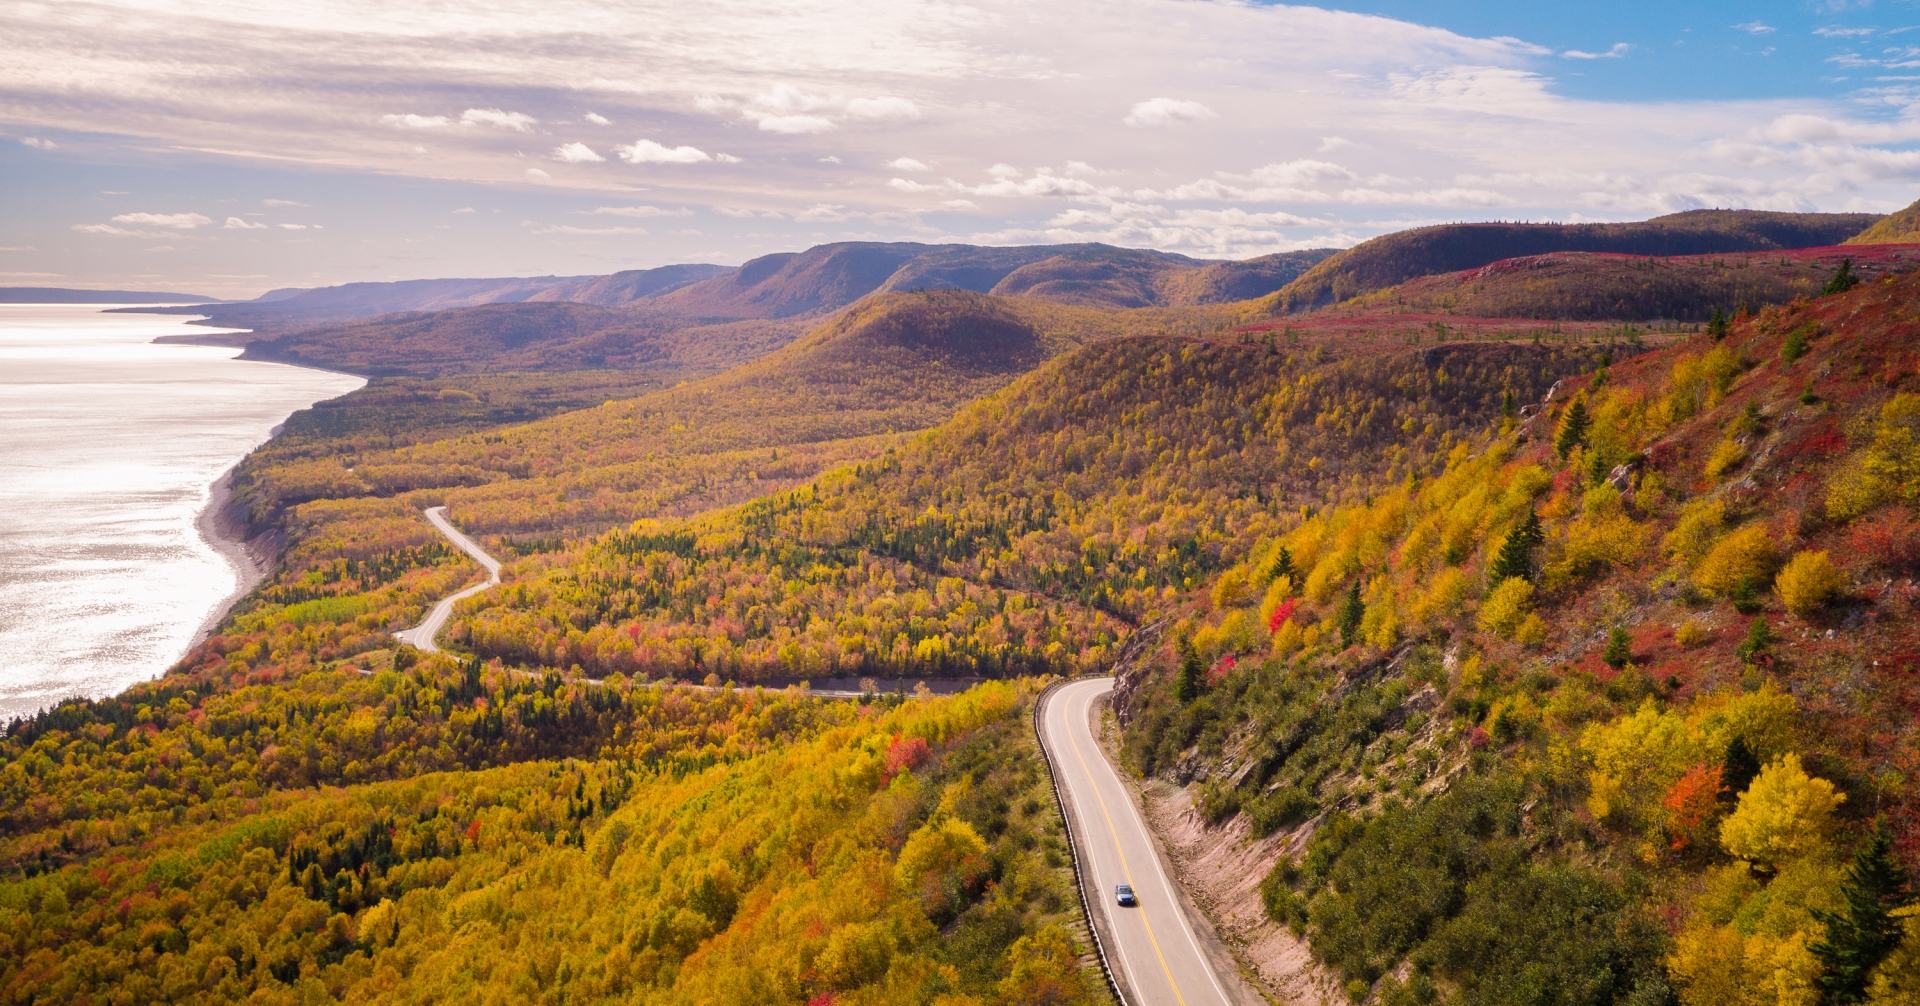 Cabot Trail during autumn